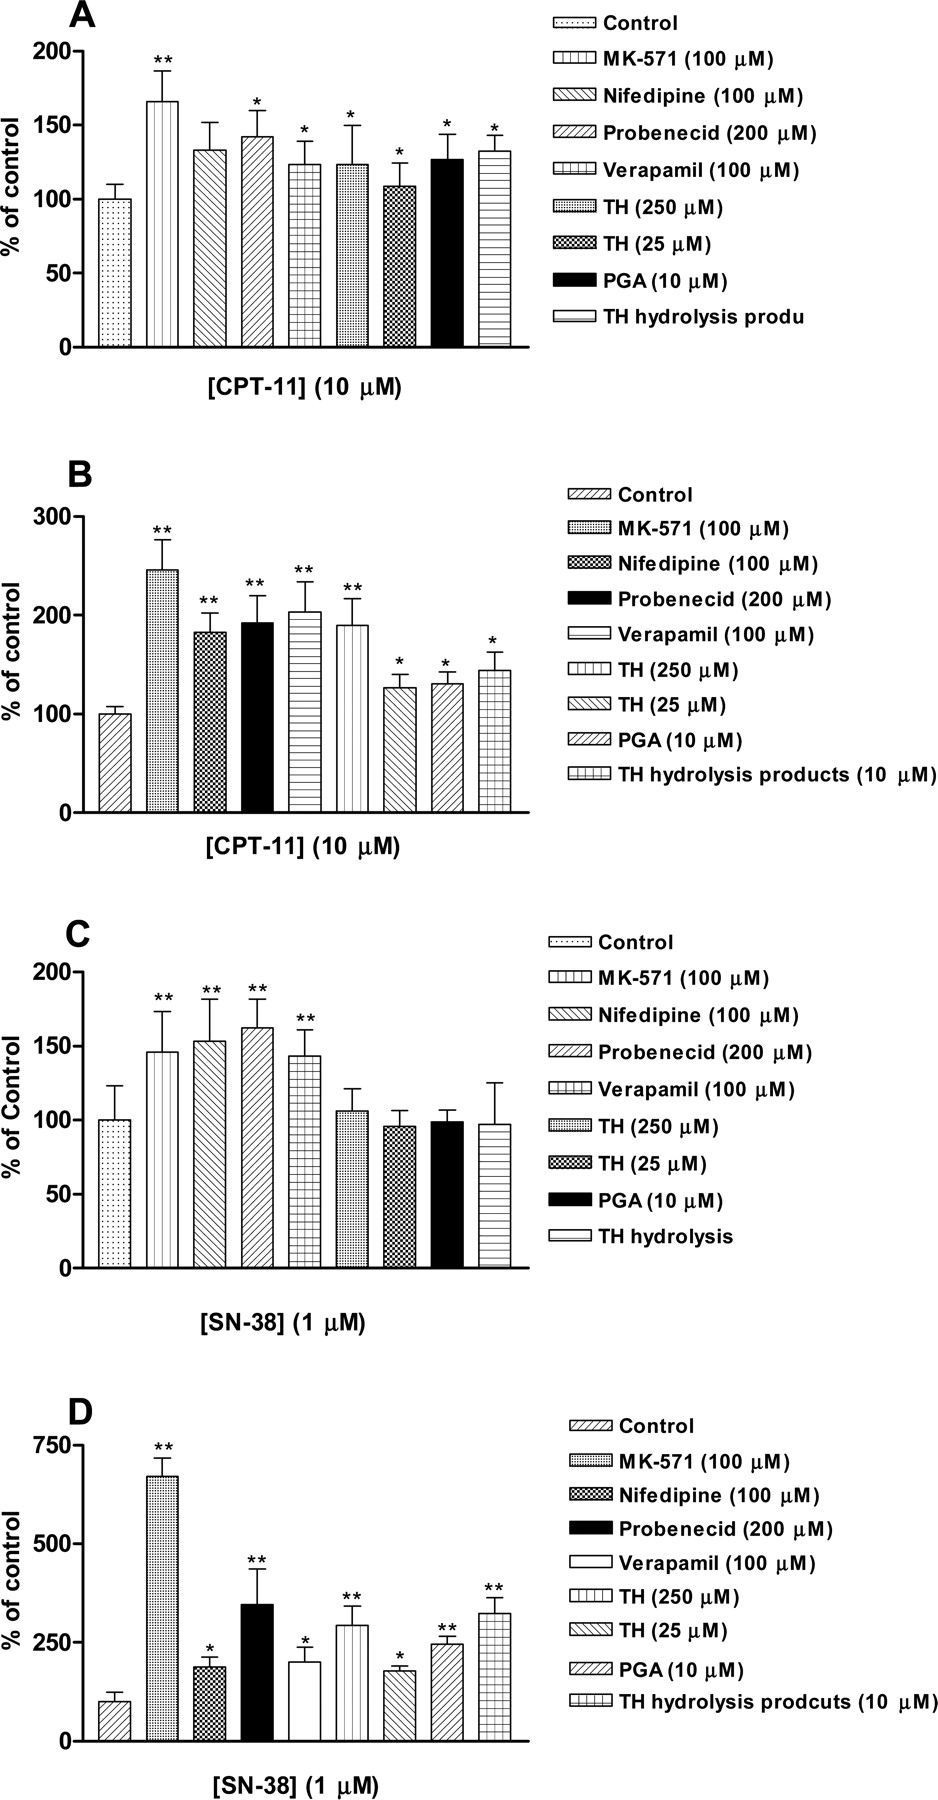 A Mechanistic Study on Reduced Toxicity of Irinotecan by